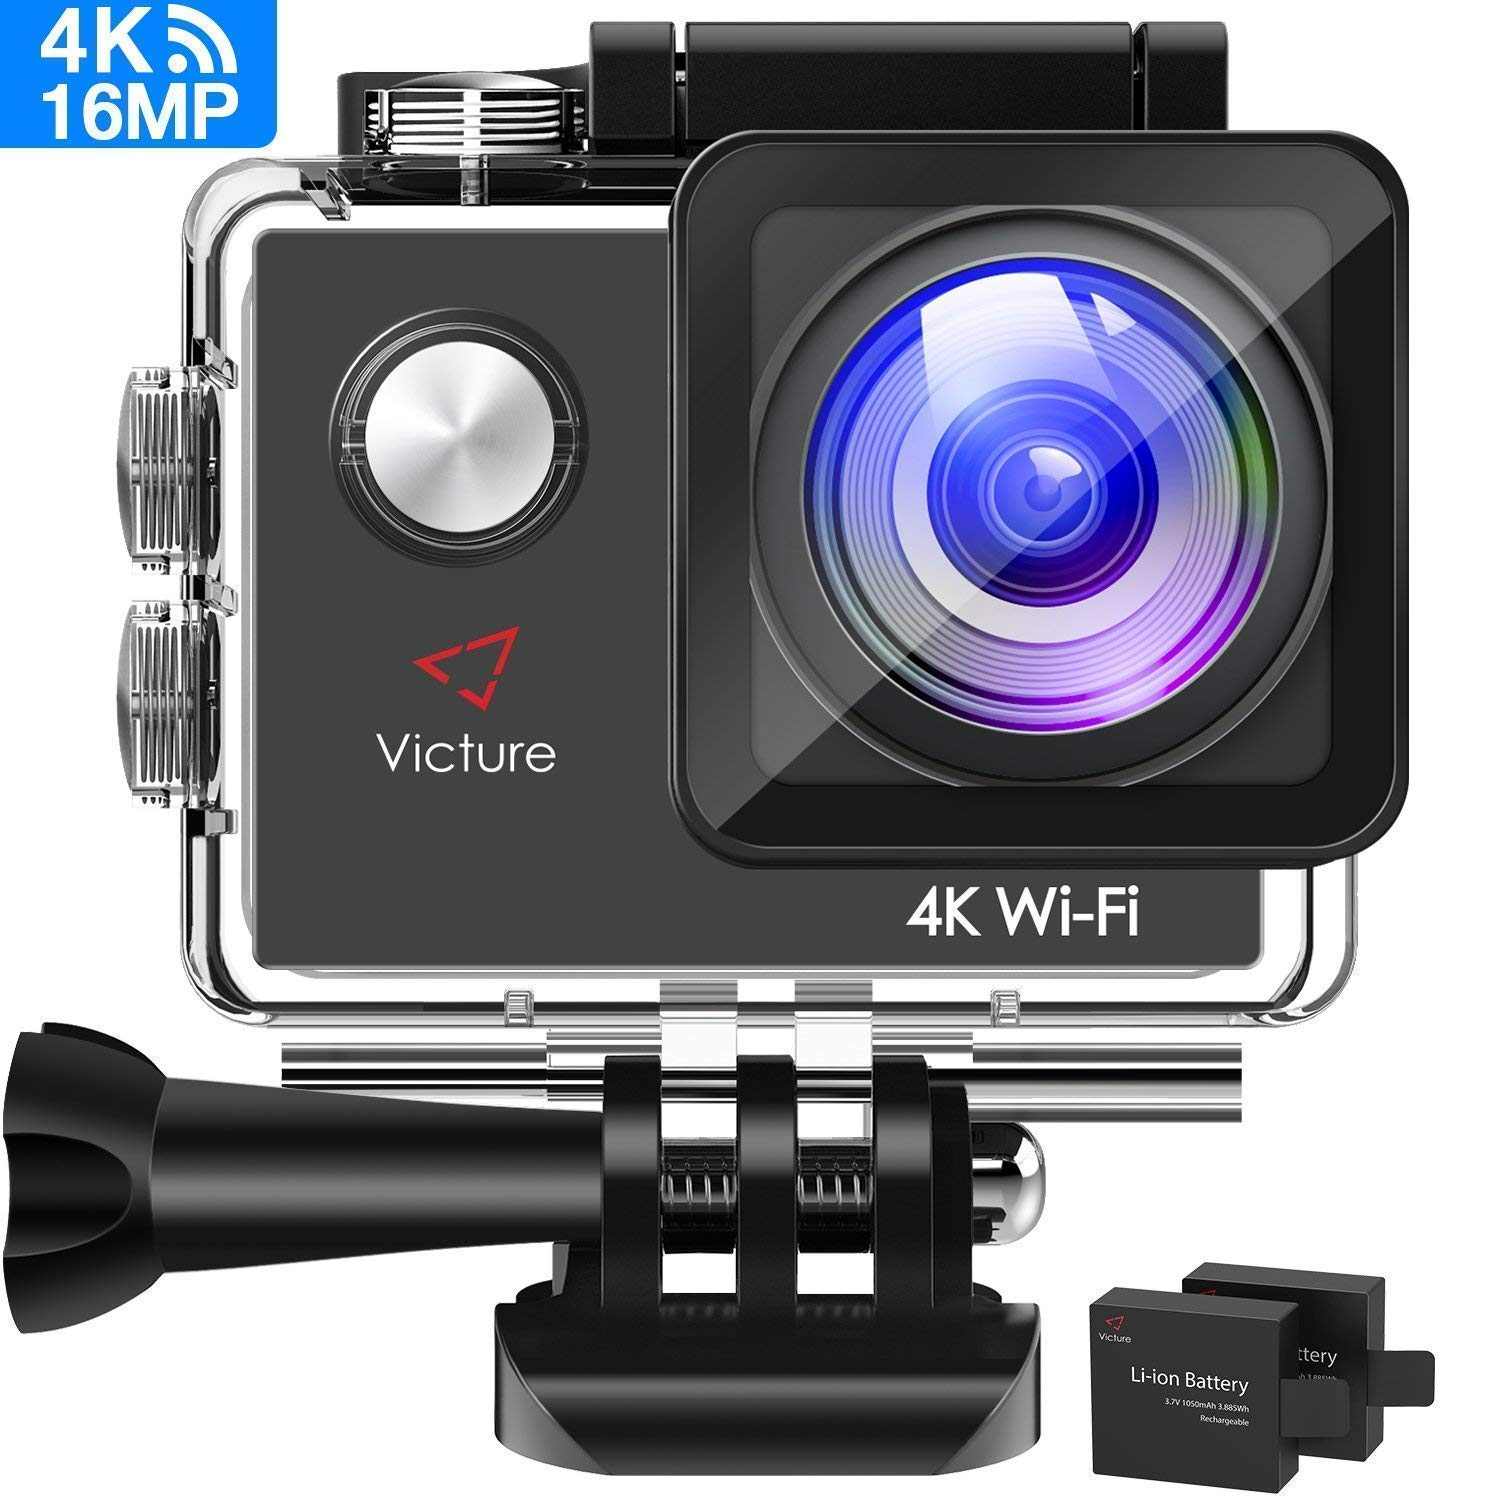 Victure Action Camera 4K WiFi 16MP 98Feet Waterproof Underwater Camera 170°Wide-Angle 2 Inch Screen Sports Cam with 2 Rechargeable 1050mAh Batteries and Mounting Accessories by Victure